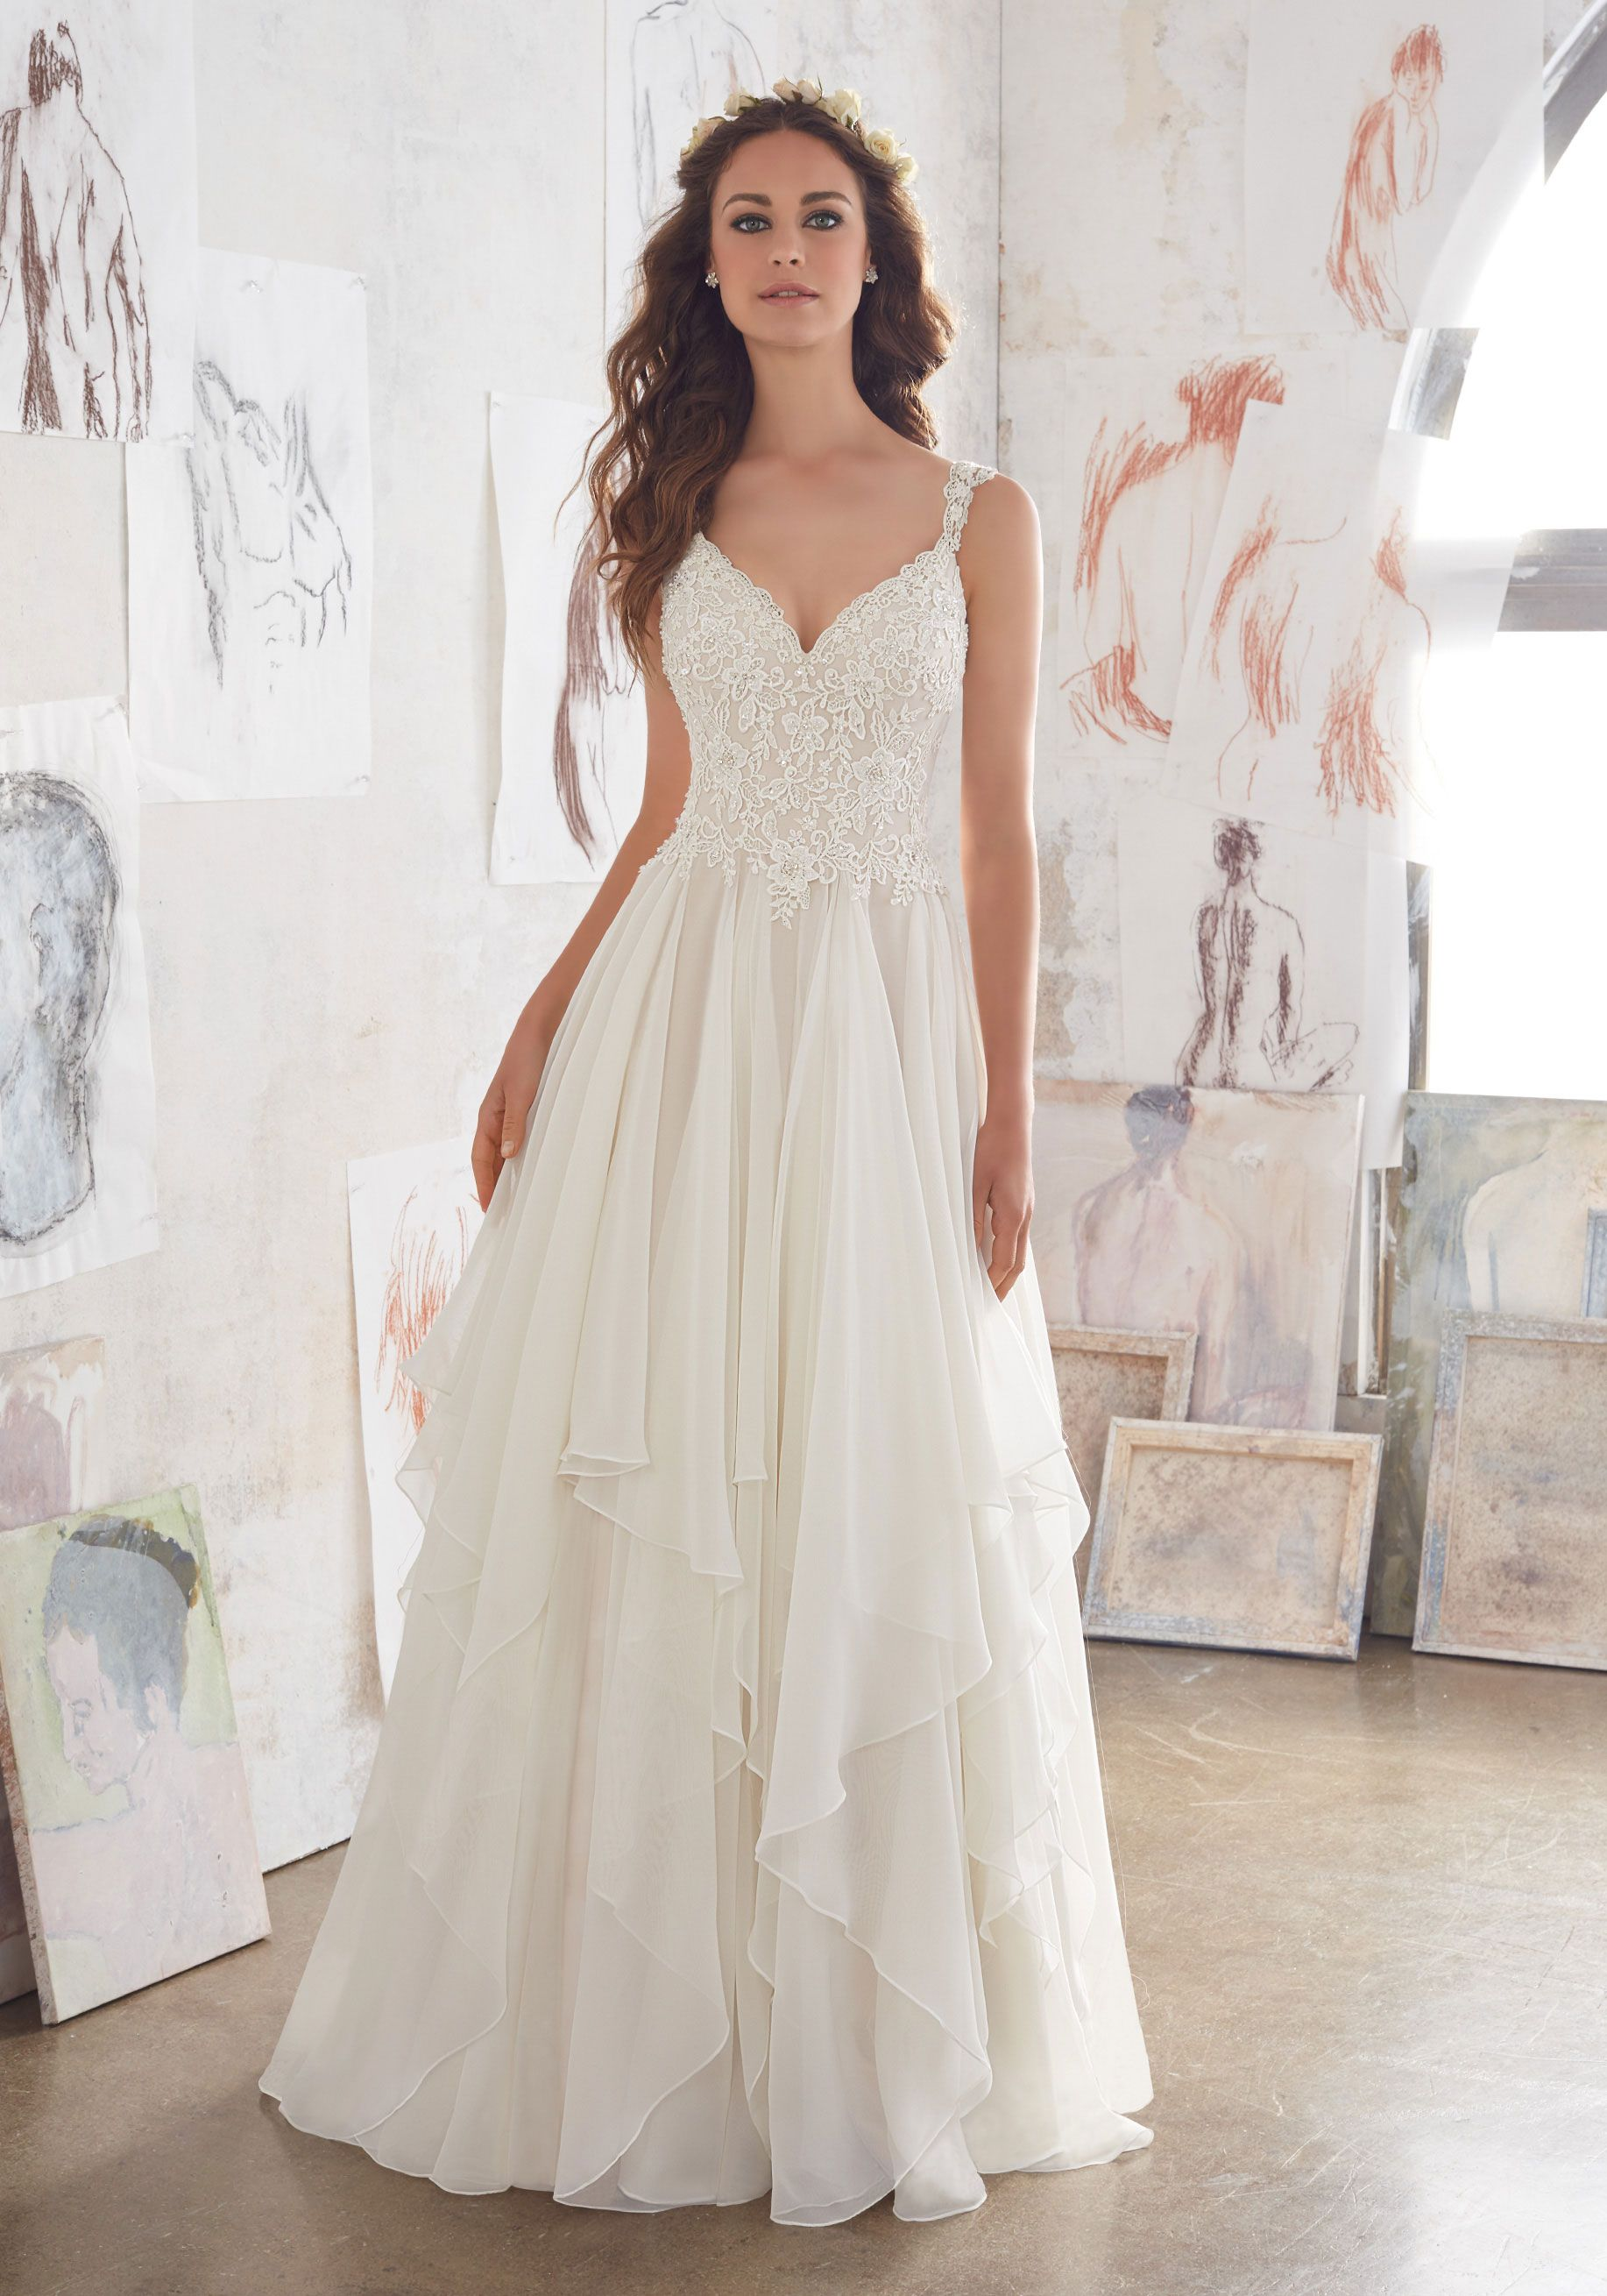 Mary wedding dress pinterest wedding dresses wedding and